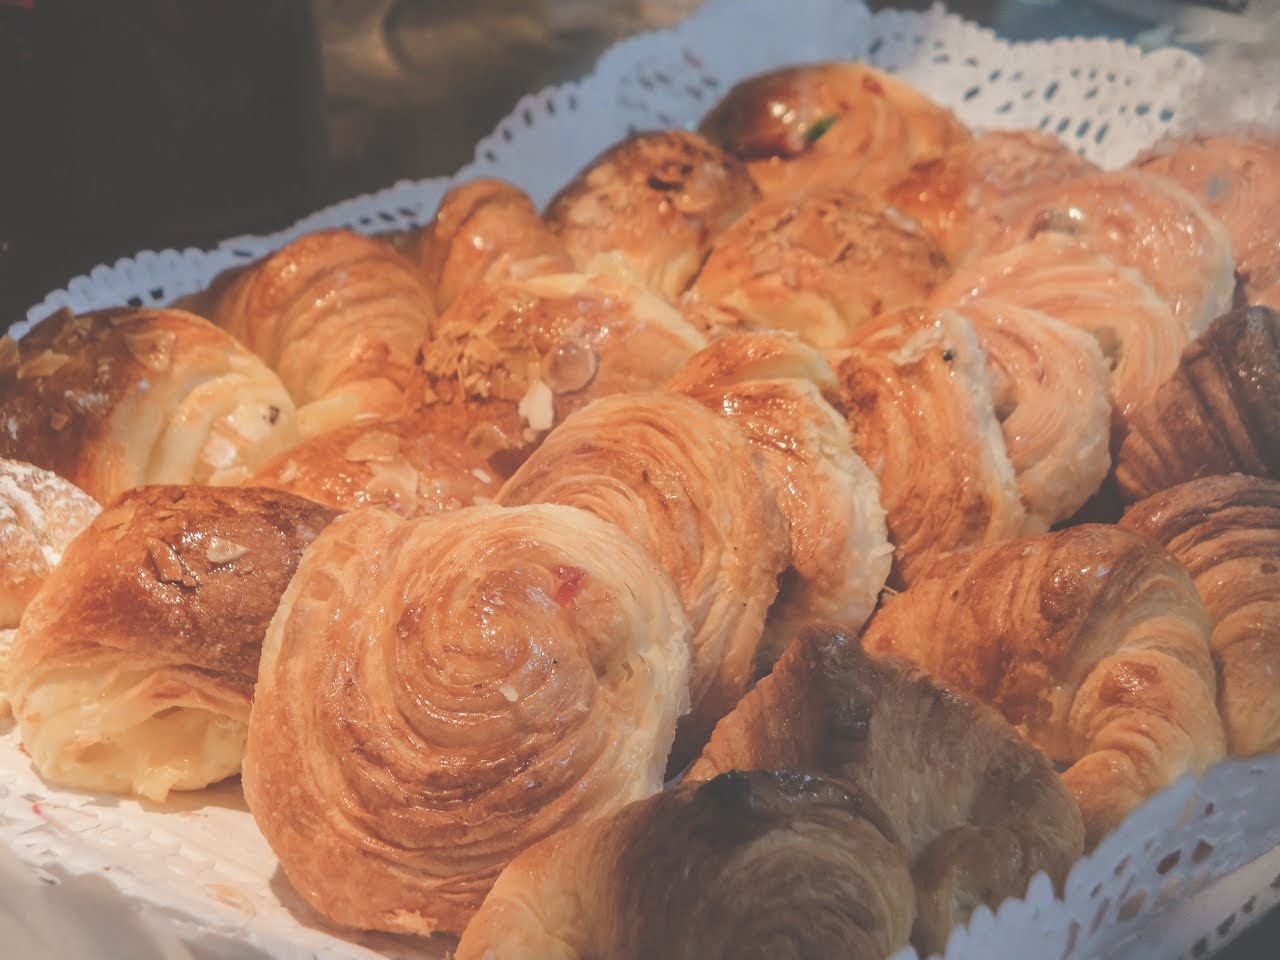 A closeup of the sweet croissants being sold at one vendor's stall